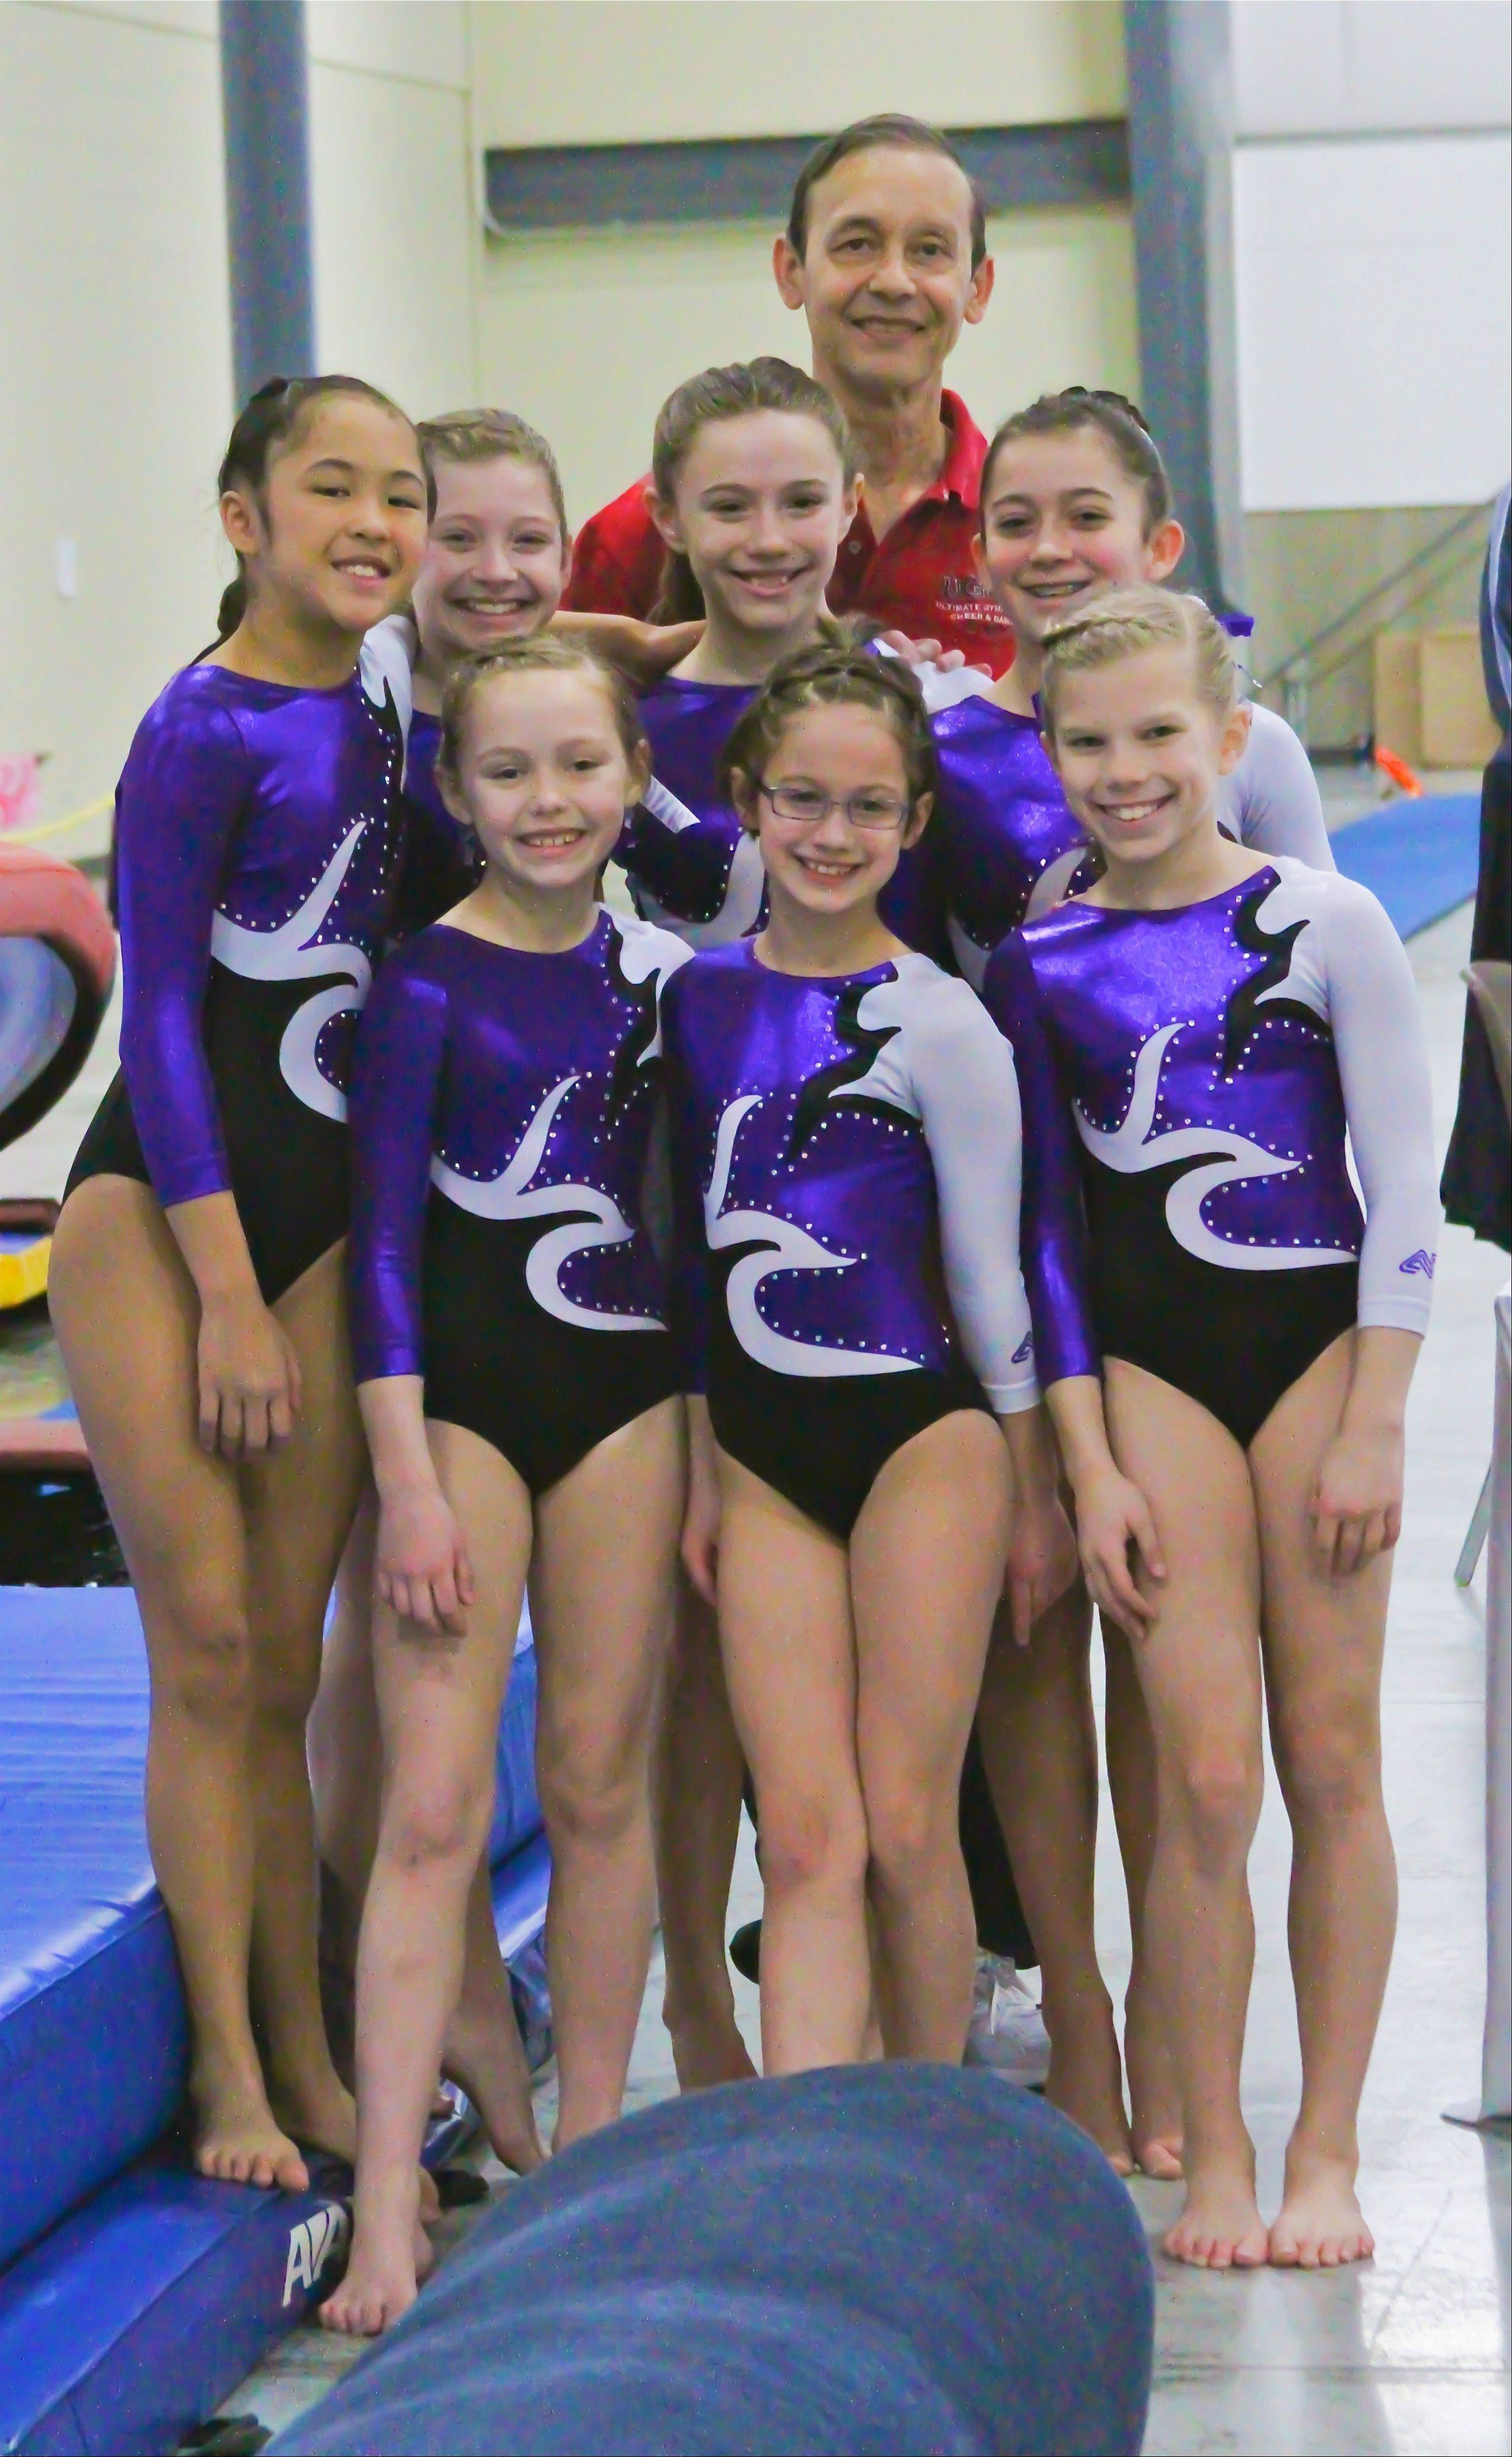 Members of the Level 6 girls team from Ultimate Gymnastics of Gurnee celebrate their first-place finish at the St. Valentine's Classic meet held recently at the Lake County Fairgrounds. Pictured with Coach Raul Rendon are, from left, back row: Sabrina Panlaqui, Jenna Ritzert, Hannah McCue and Delaney Jones; front row: Abbie Bosko, Emily Isabelli and Lyndsey Basara.